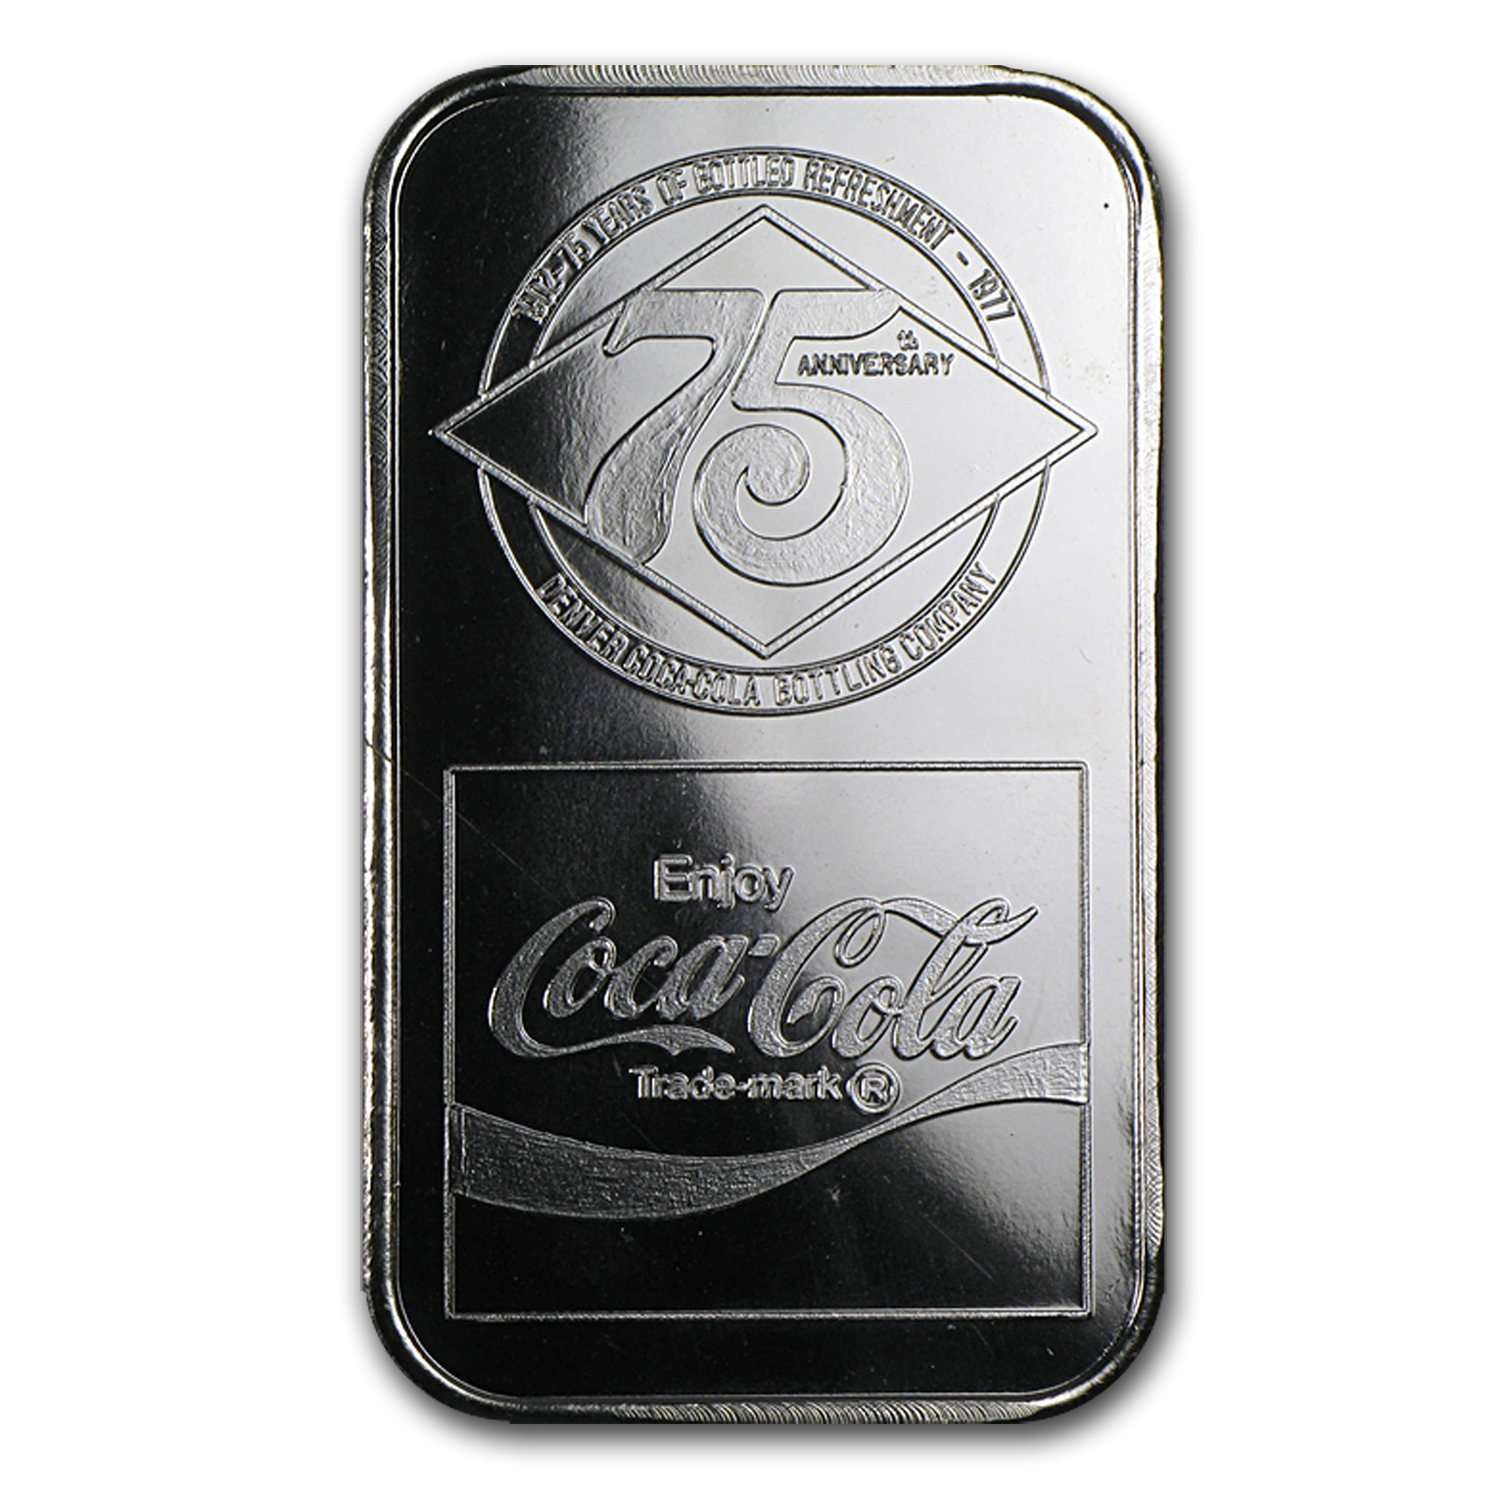 1 oz Silver Bars - Coca Cola (Denver, CO)